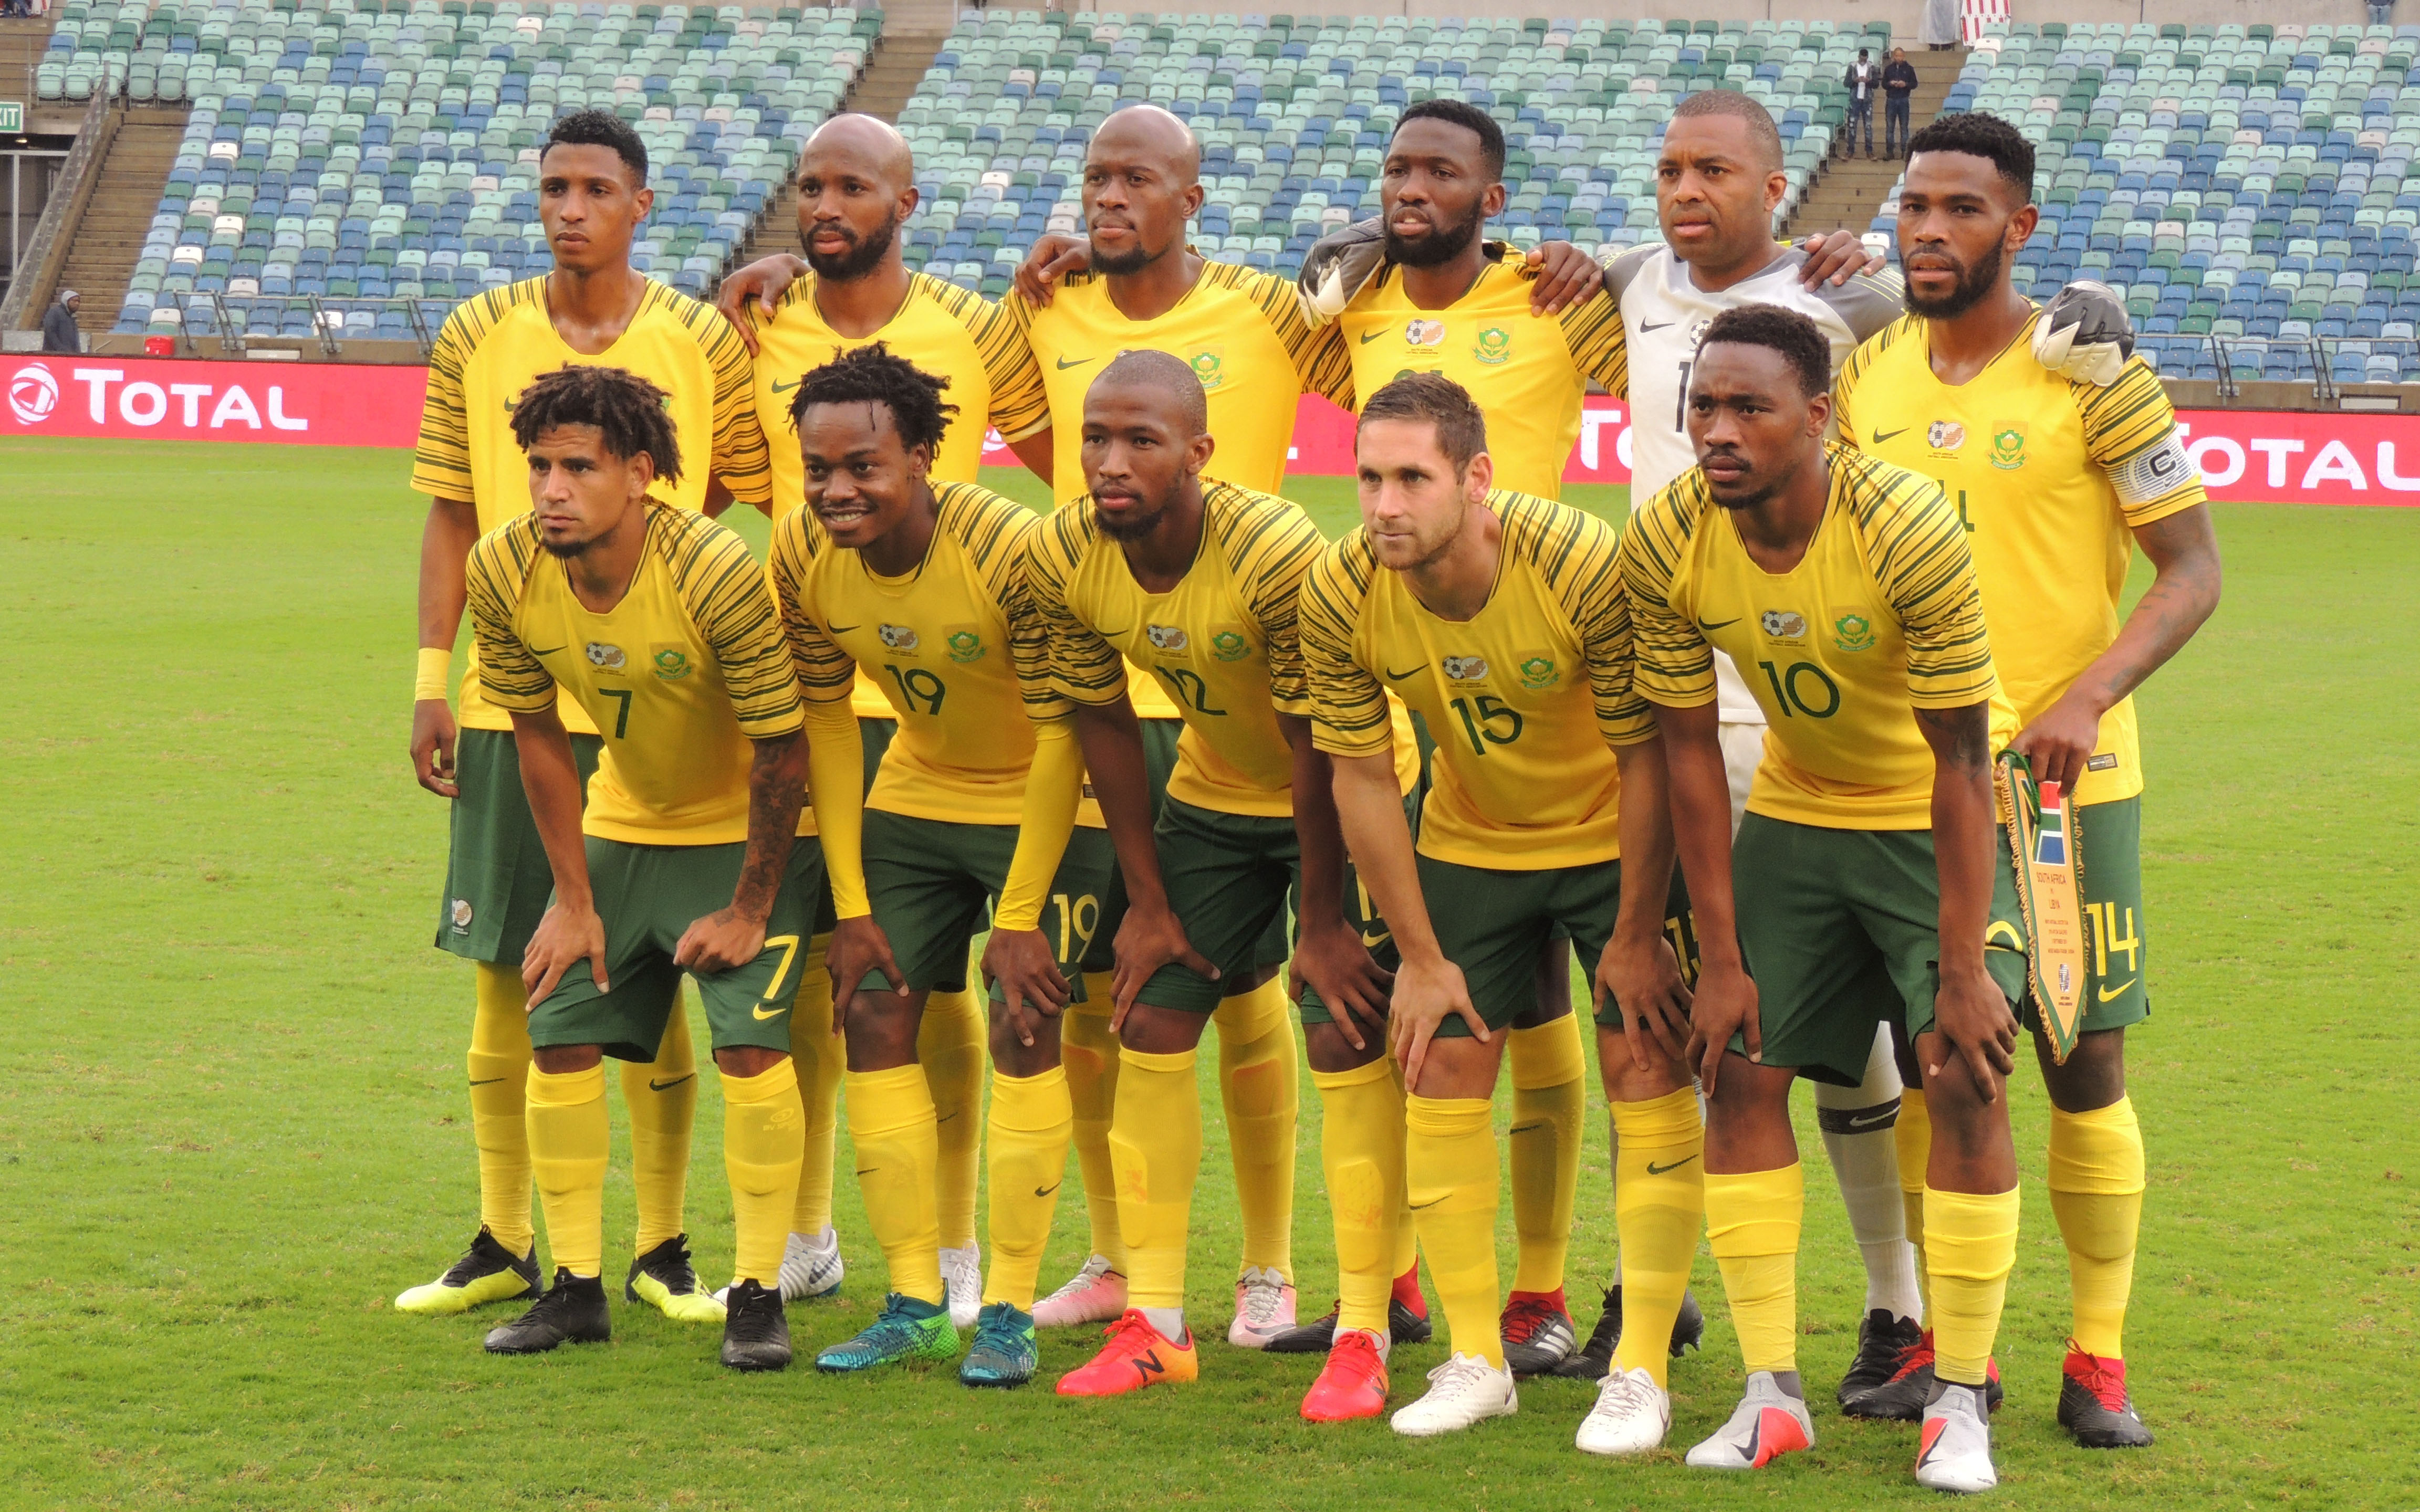 FEATURE: Bafana Bafana kick off manic week as coach Ntseki continues to forge identity